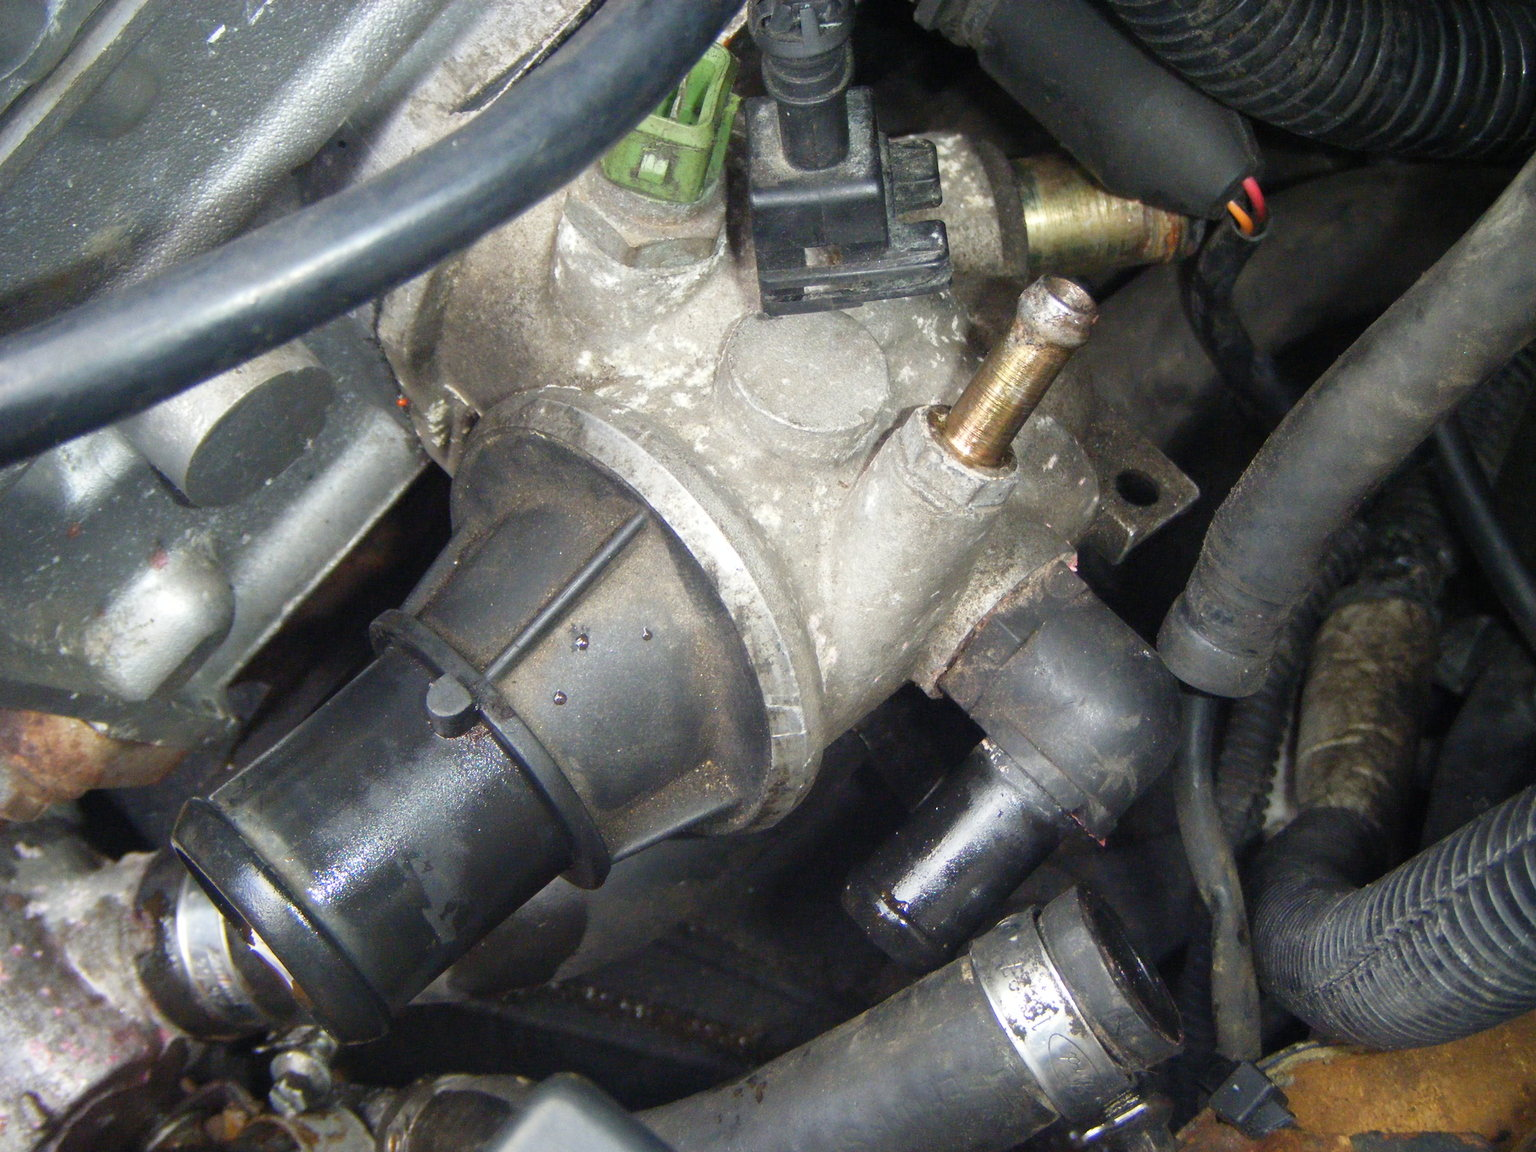 Radiator Replacement Dumdums 2630794 further How To Replace A Temperature Sensor MKIV VWAudi Jetta Golf 18T DIY besides Watch in addition 694975 No Heat further Showthread. on radiator thermostat location